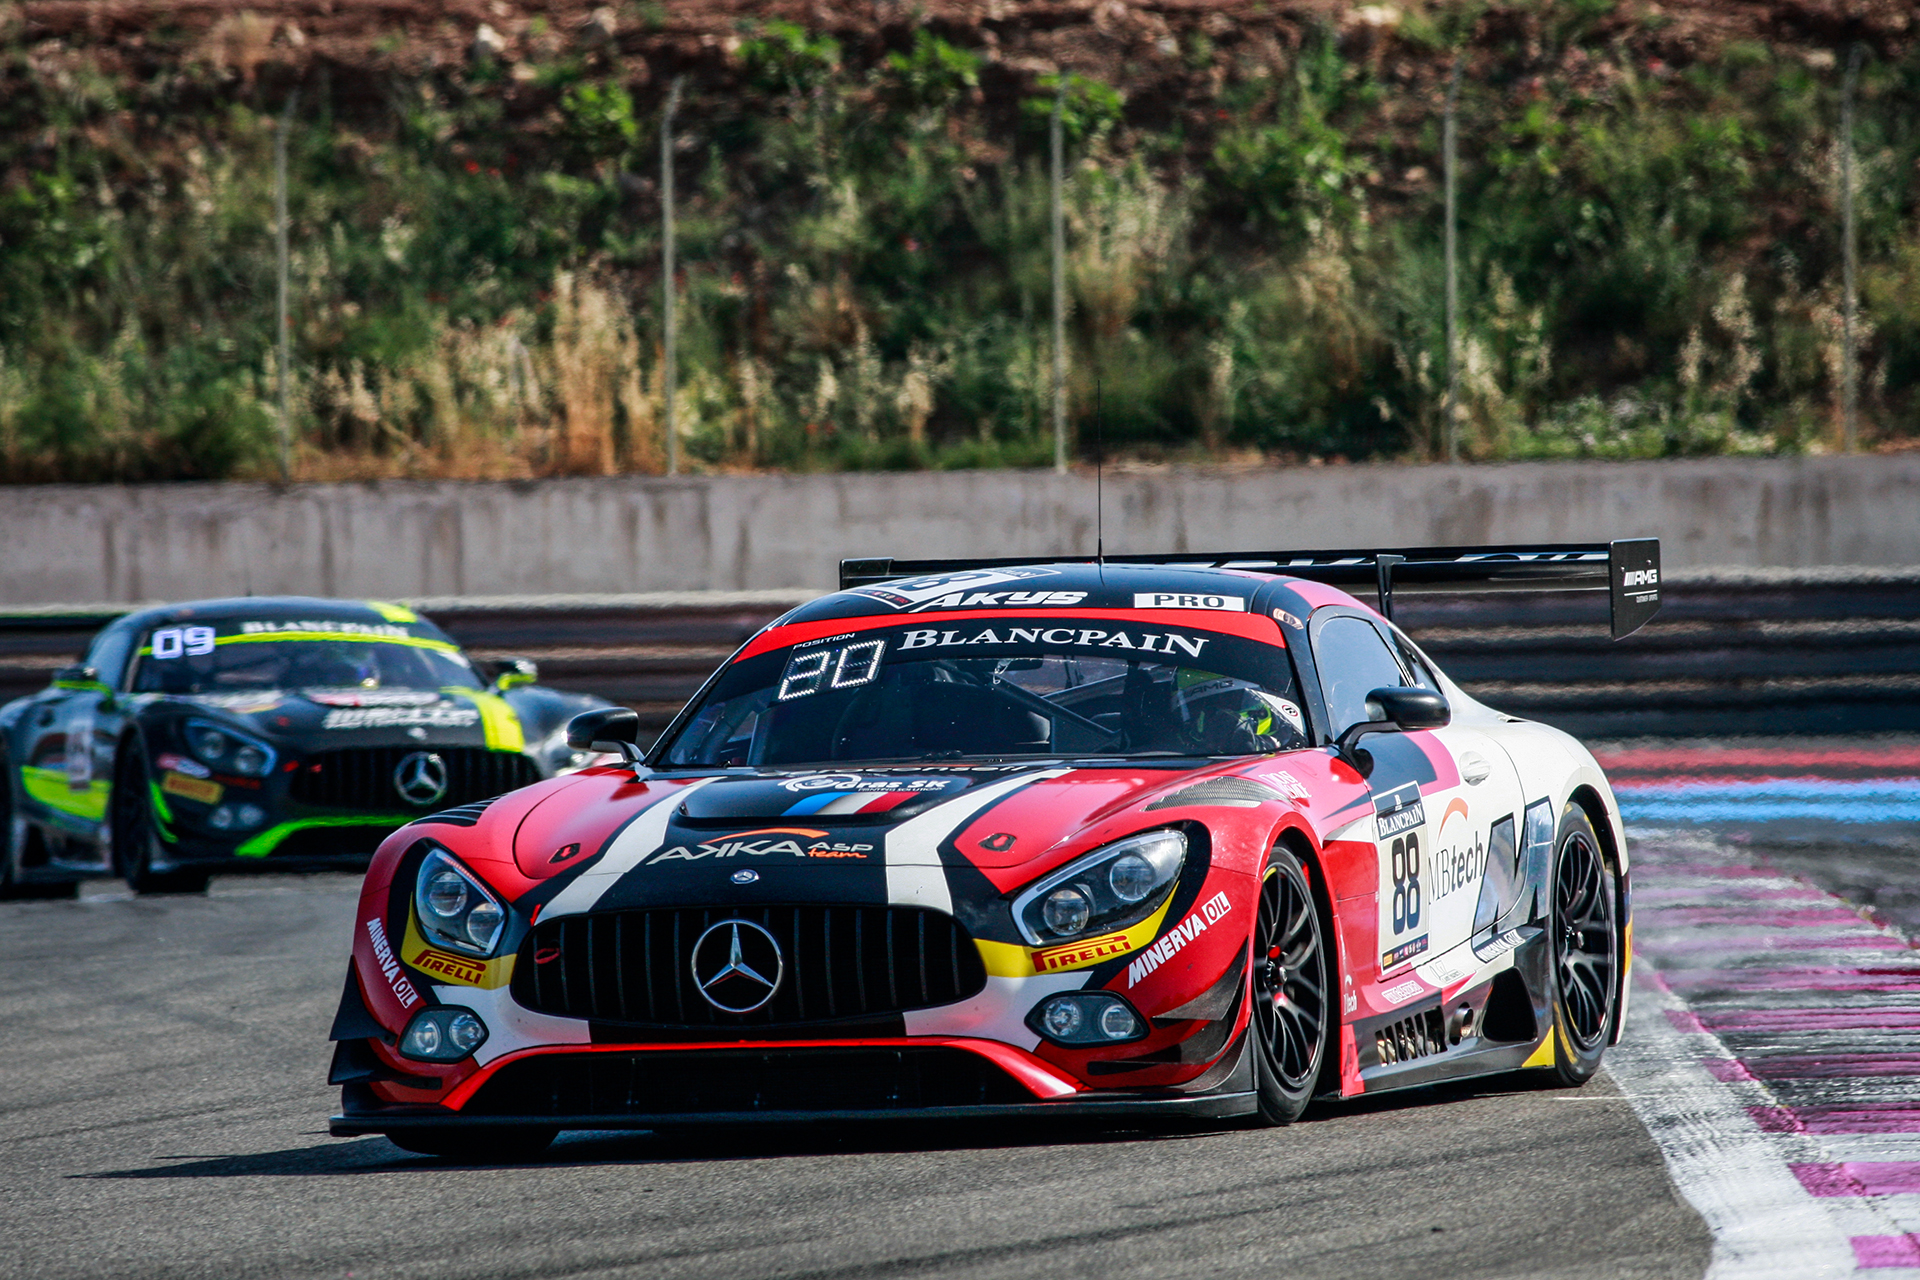 Strong performance by Renger in Blancpain Series (NL)